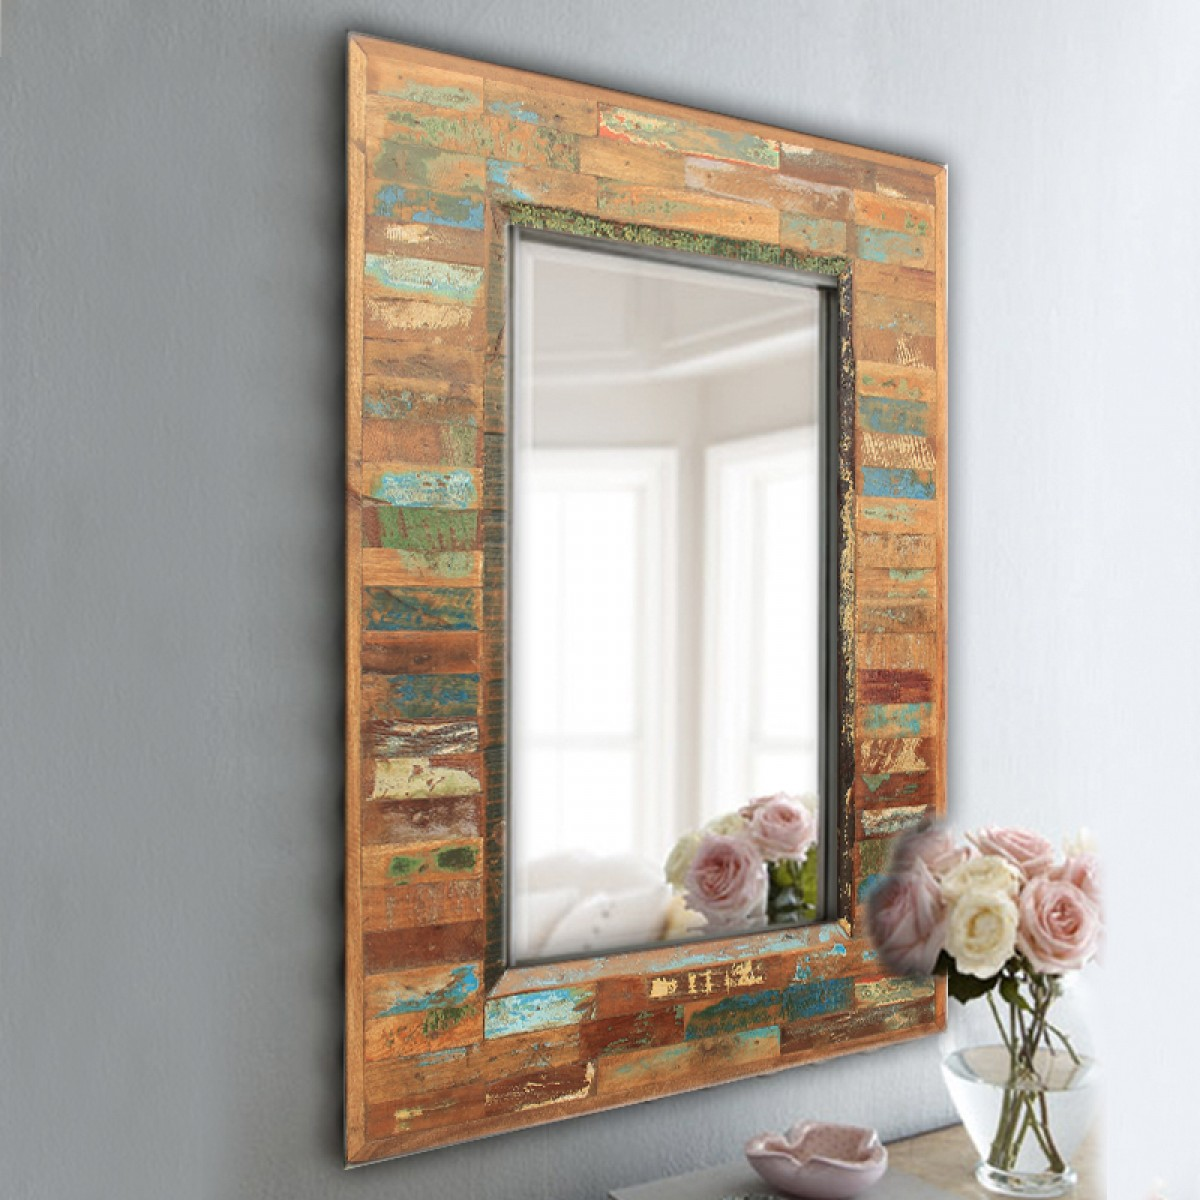 Kirkland Mirrors | Oak Framed Bathroom Mirrors | Reclaimed Wood Mirror